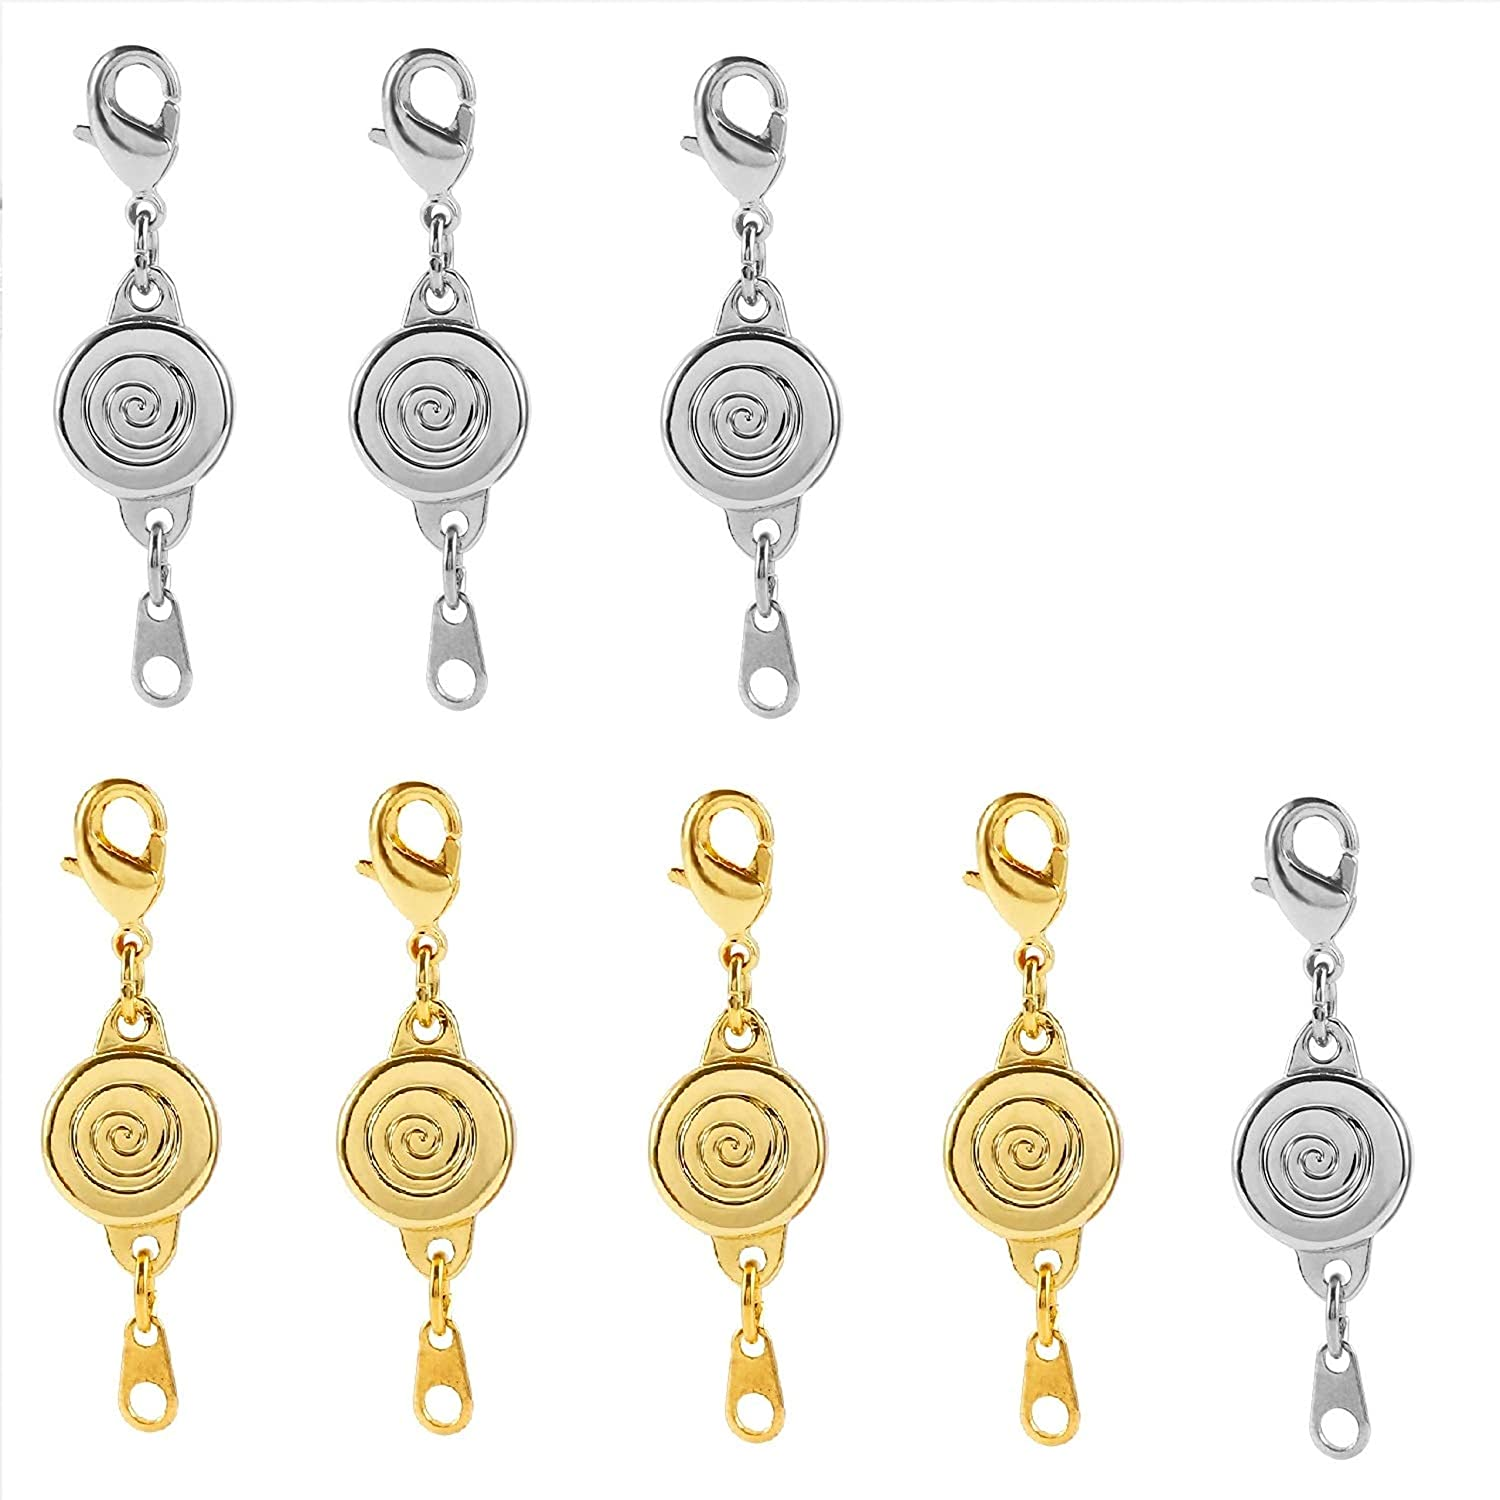 Sparik Enjoy 8 pcs Magnetic Necklace Clasp Extender Gold and Silver Color Tone for Jewelry Bracelet Gold+Silver - Screw